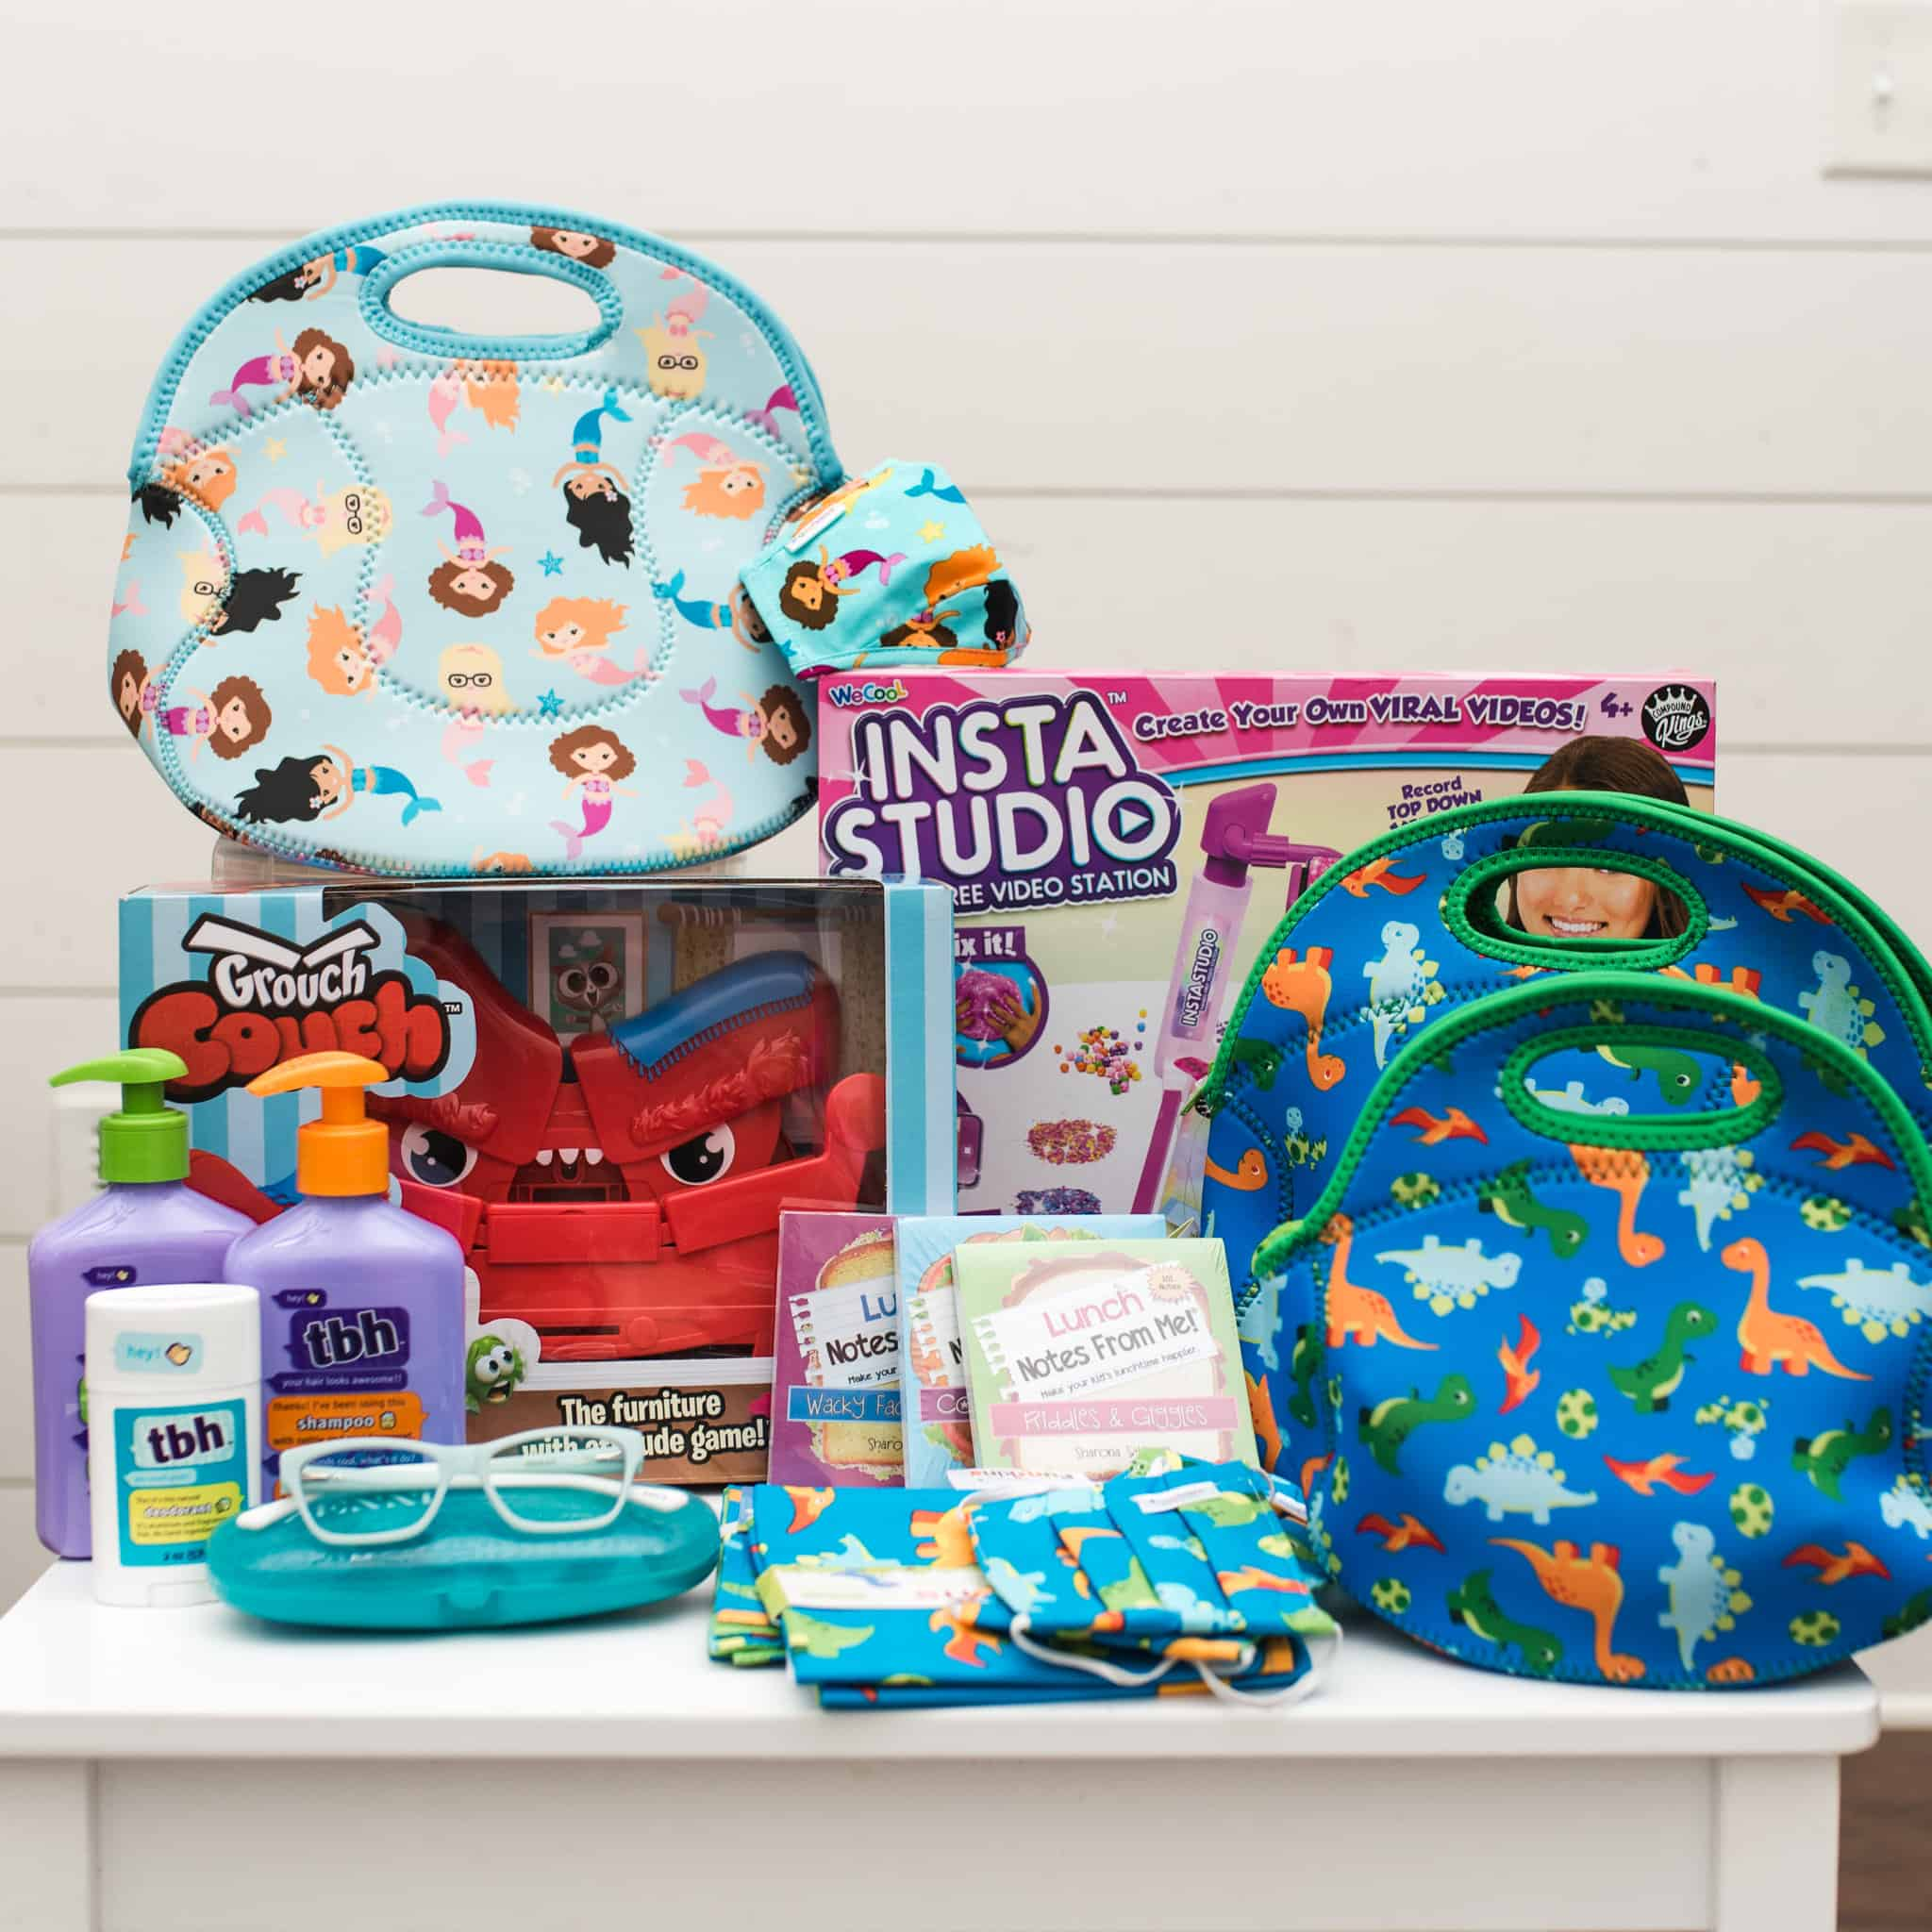 Back to School products for kids